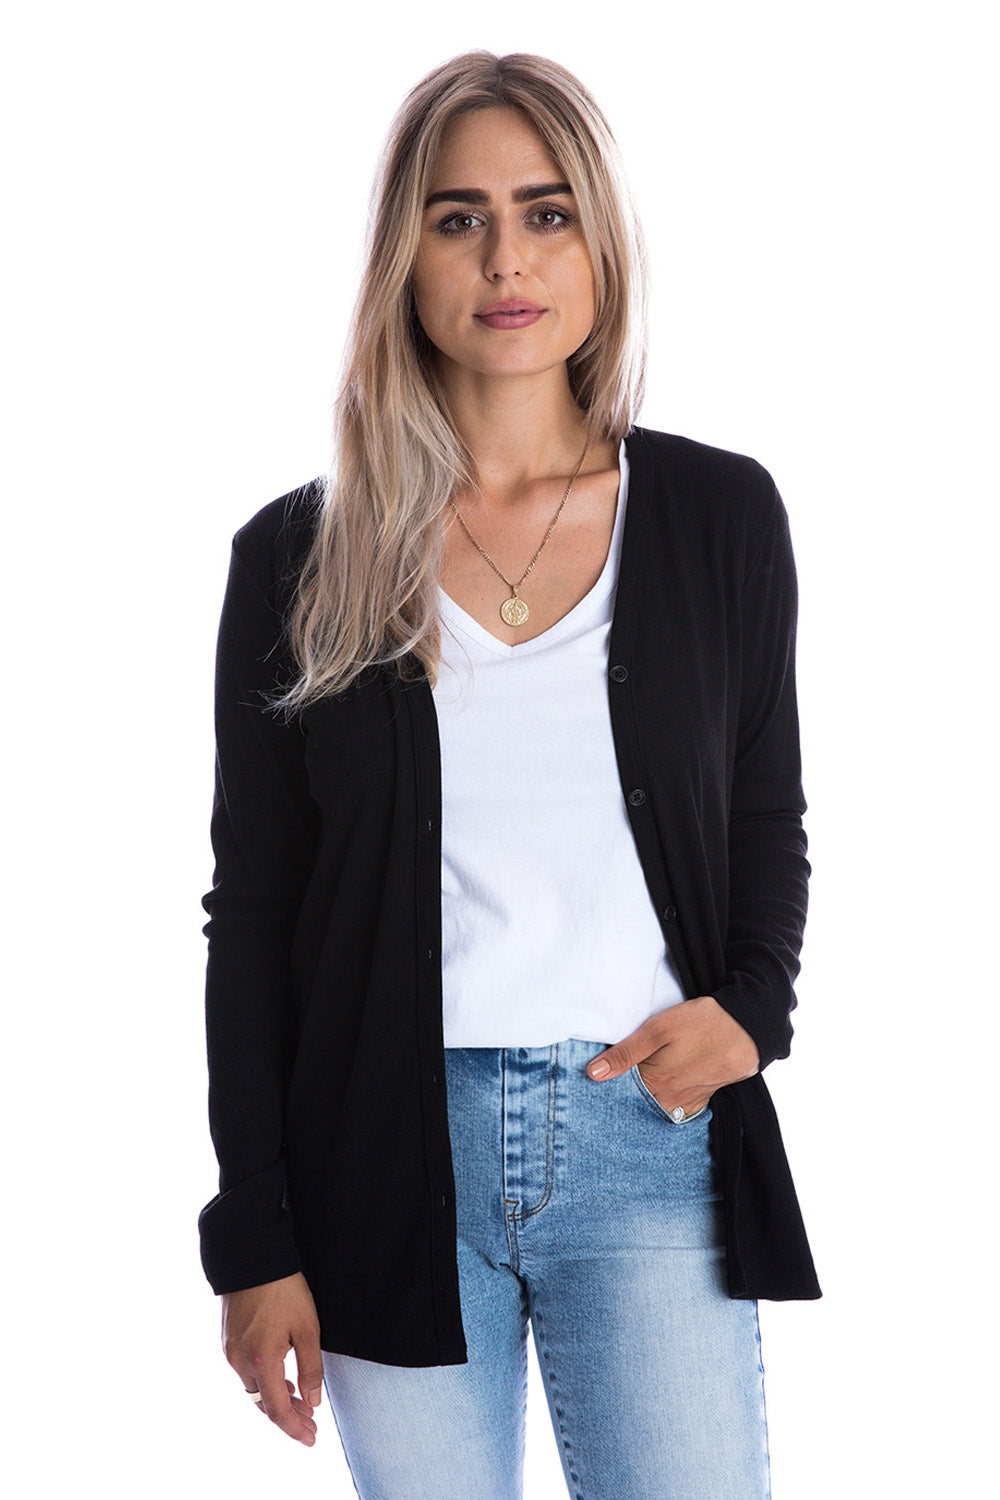 Jet Black Signature Cardigan - Adults